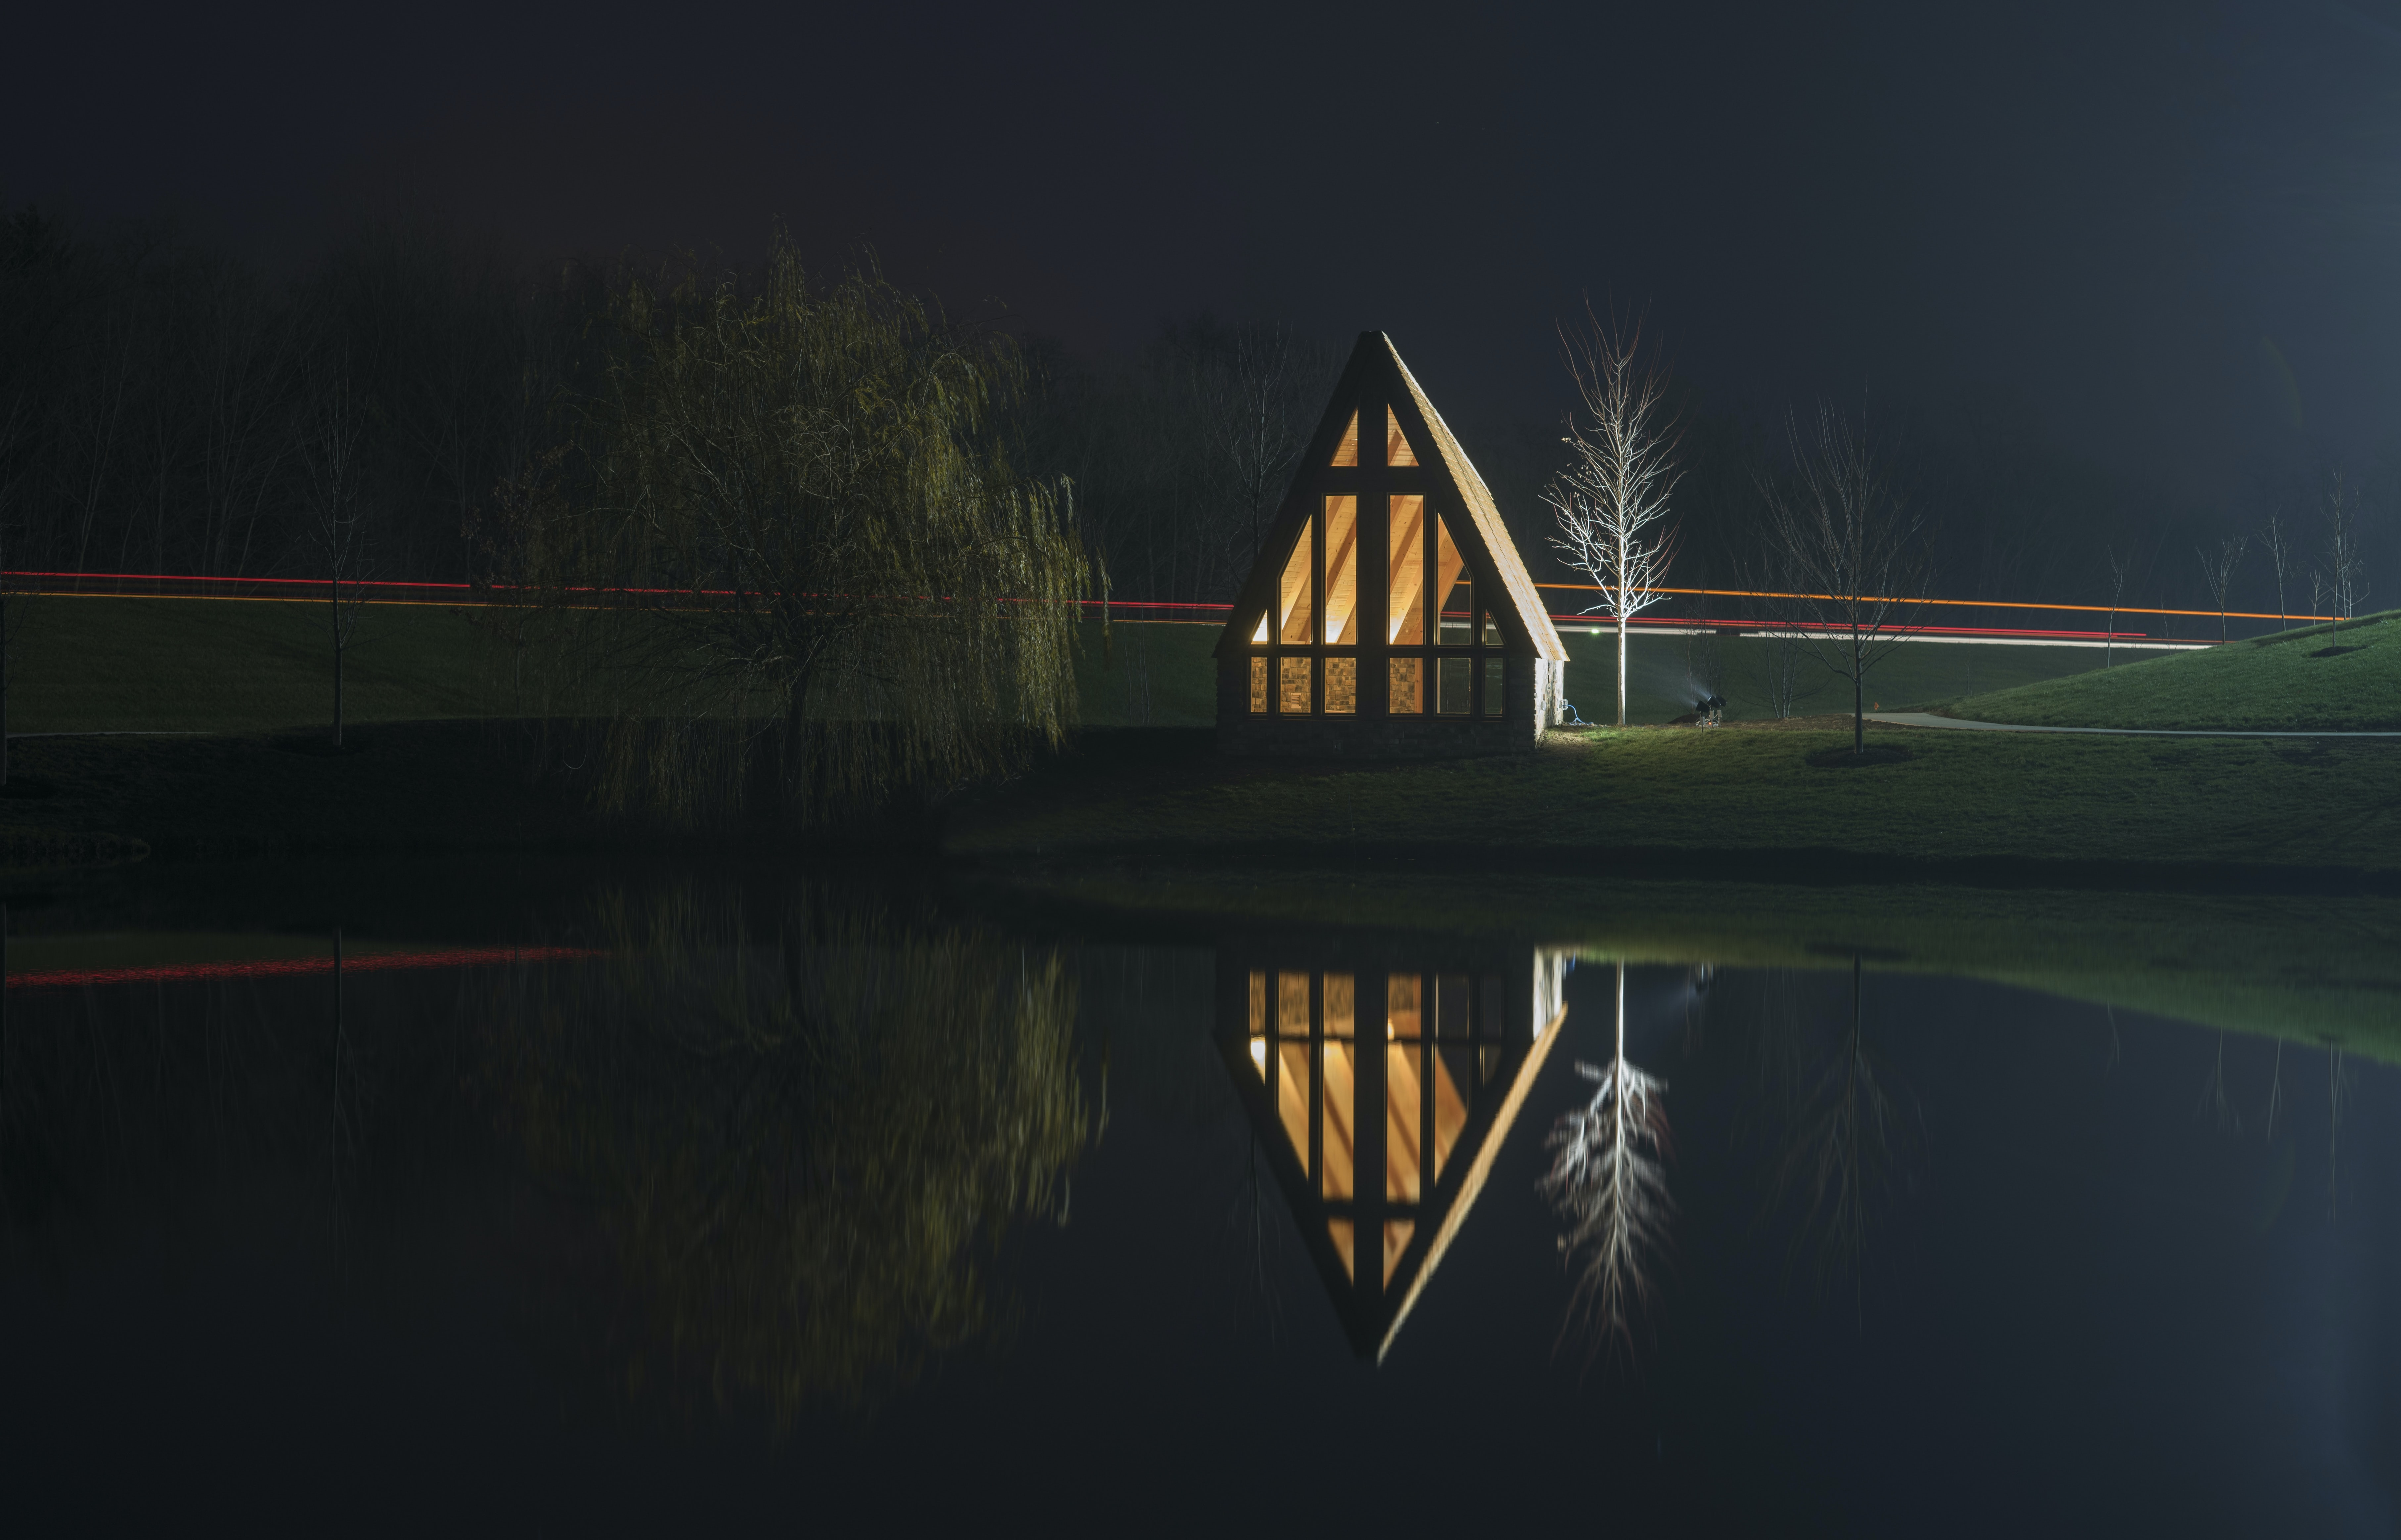 brown wooden house near bare tree with reflection on water at night time